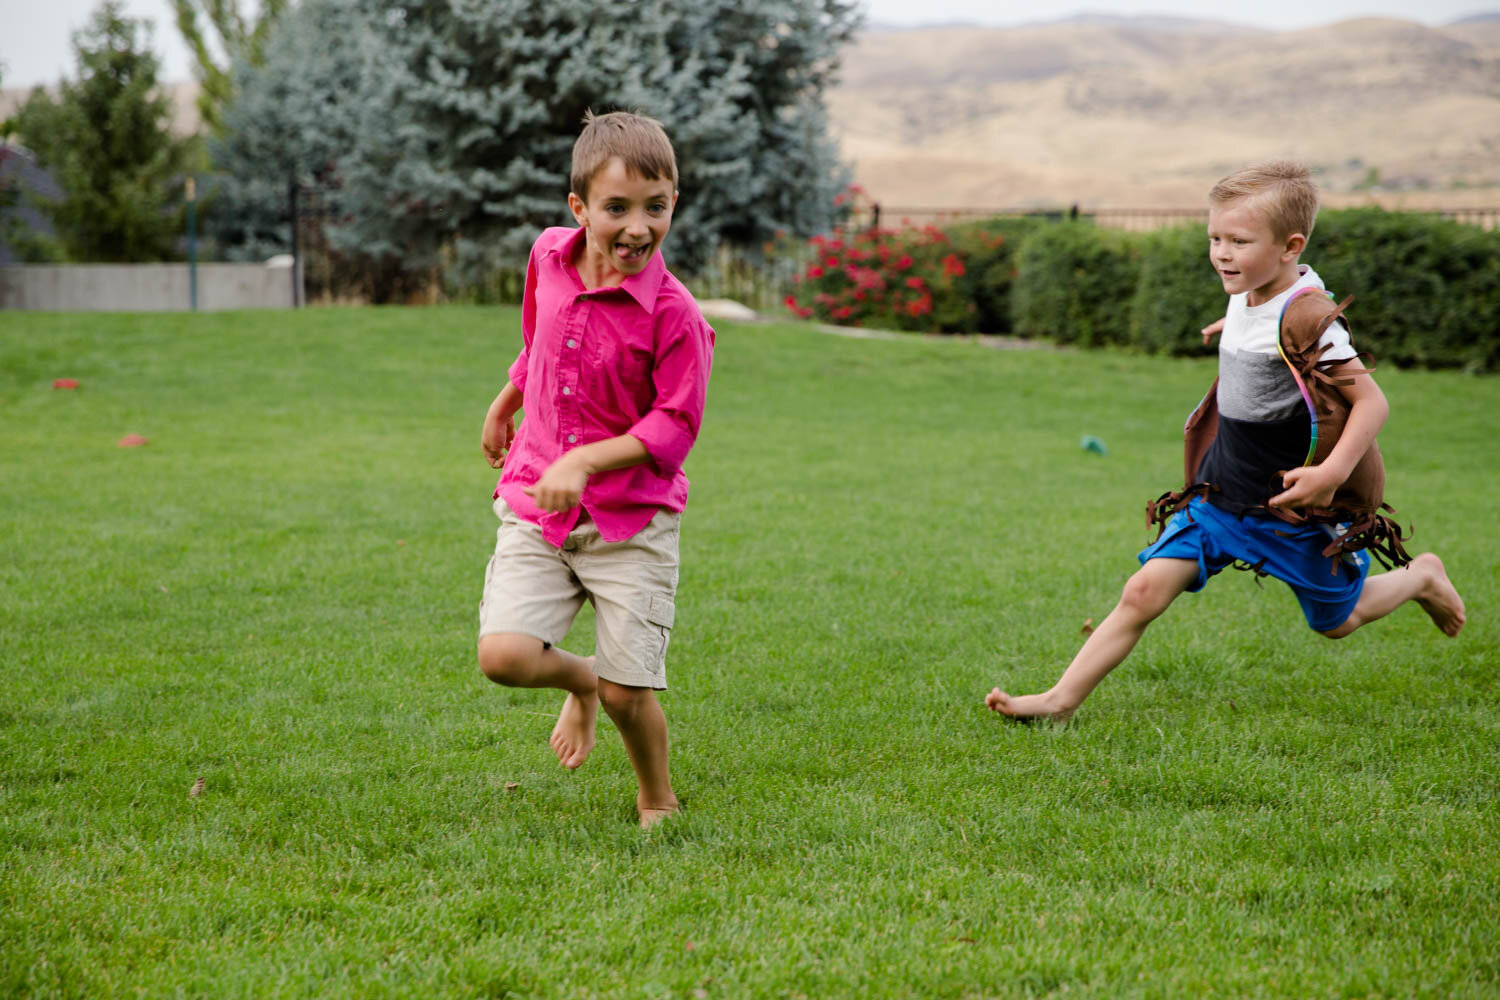 Two boys running and chasing each other and being goofy while in the backyard of a home in Hidden Springs near Boise Idaho.